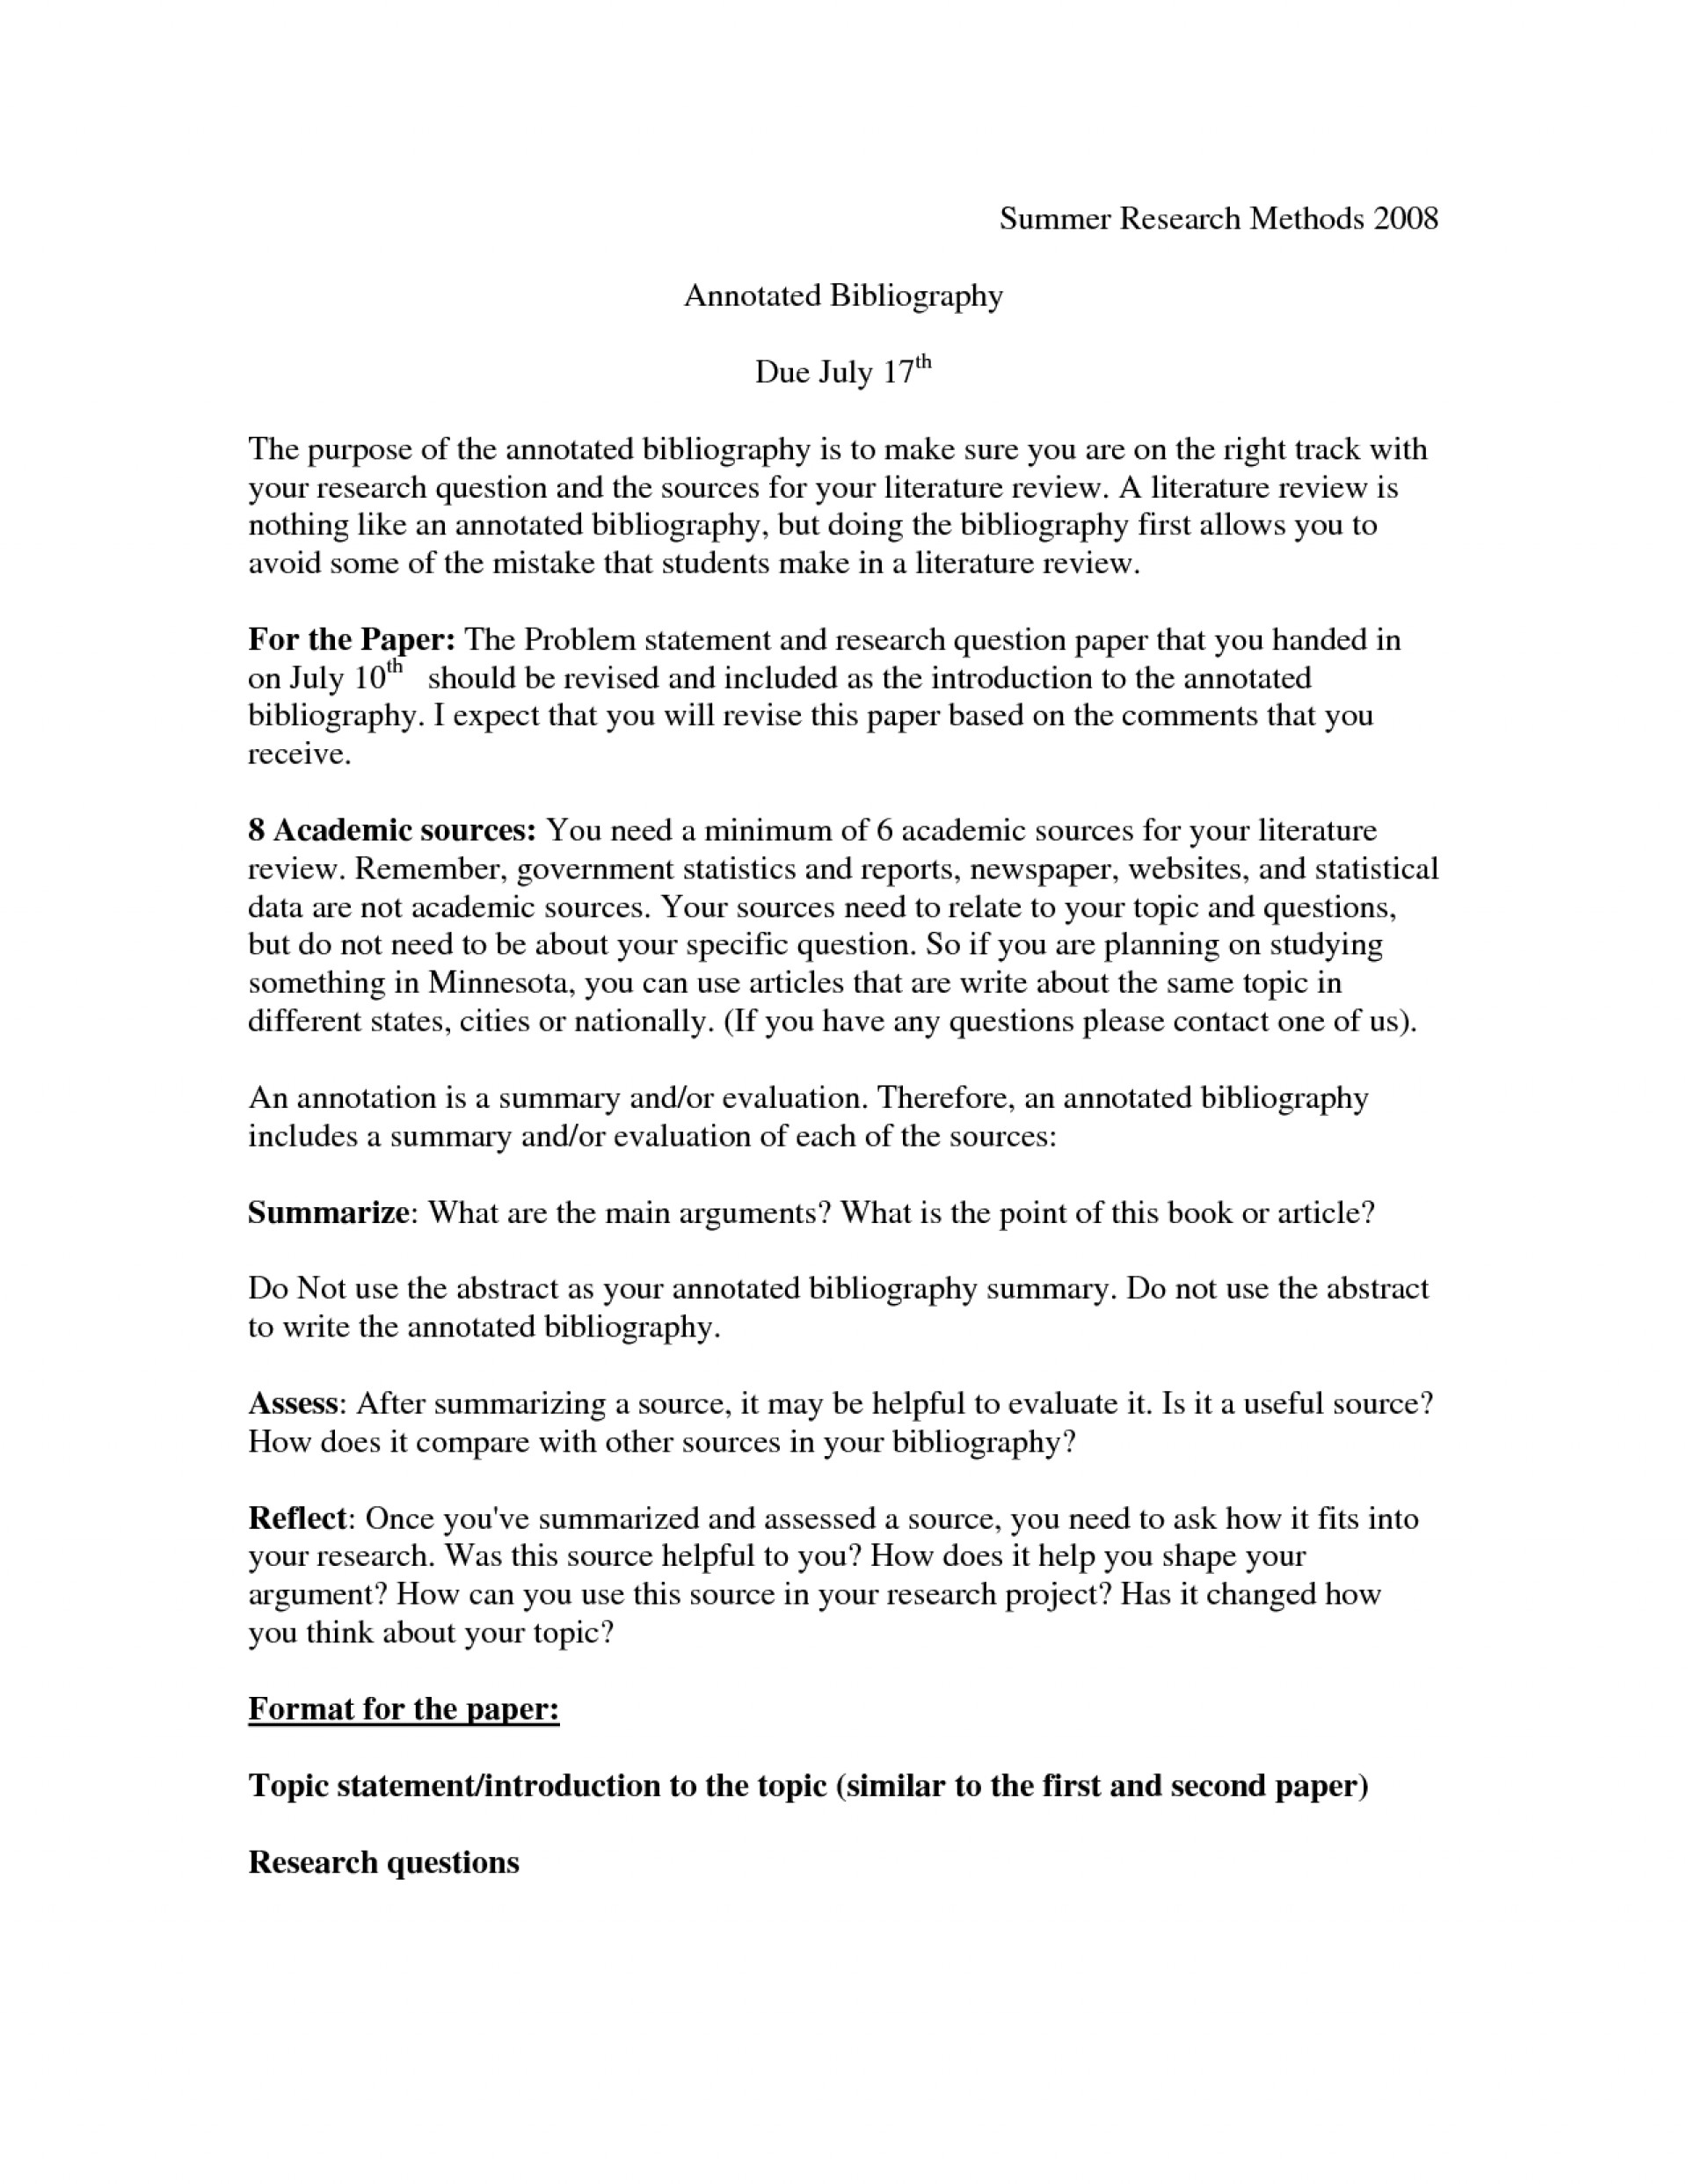 005 Annotated Bibliography Vs Research Paper Bunch Ideas Of Cute Sample Shocking Apa Example 1920